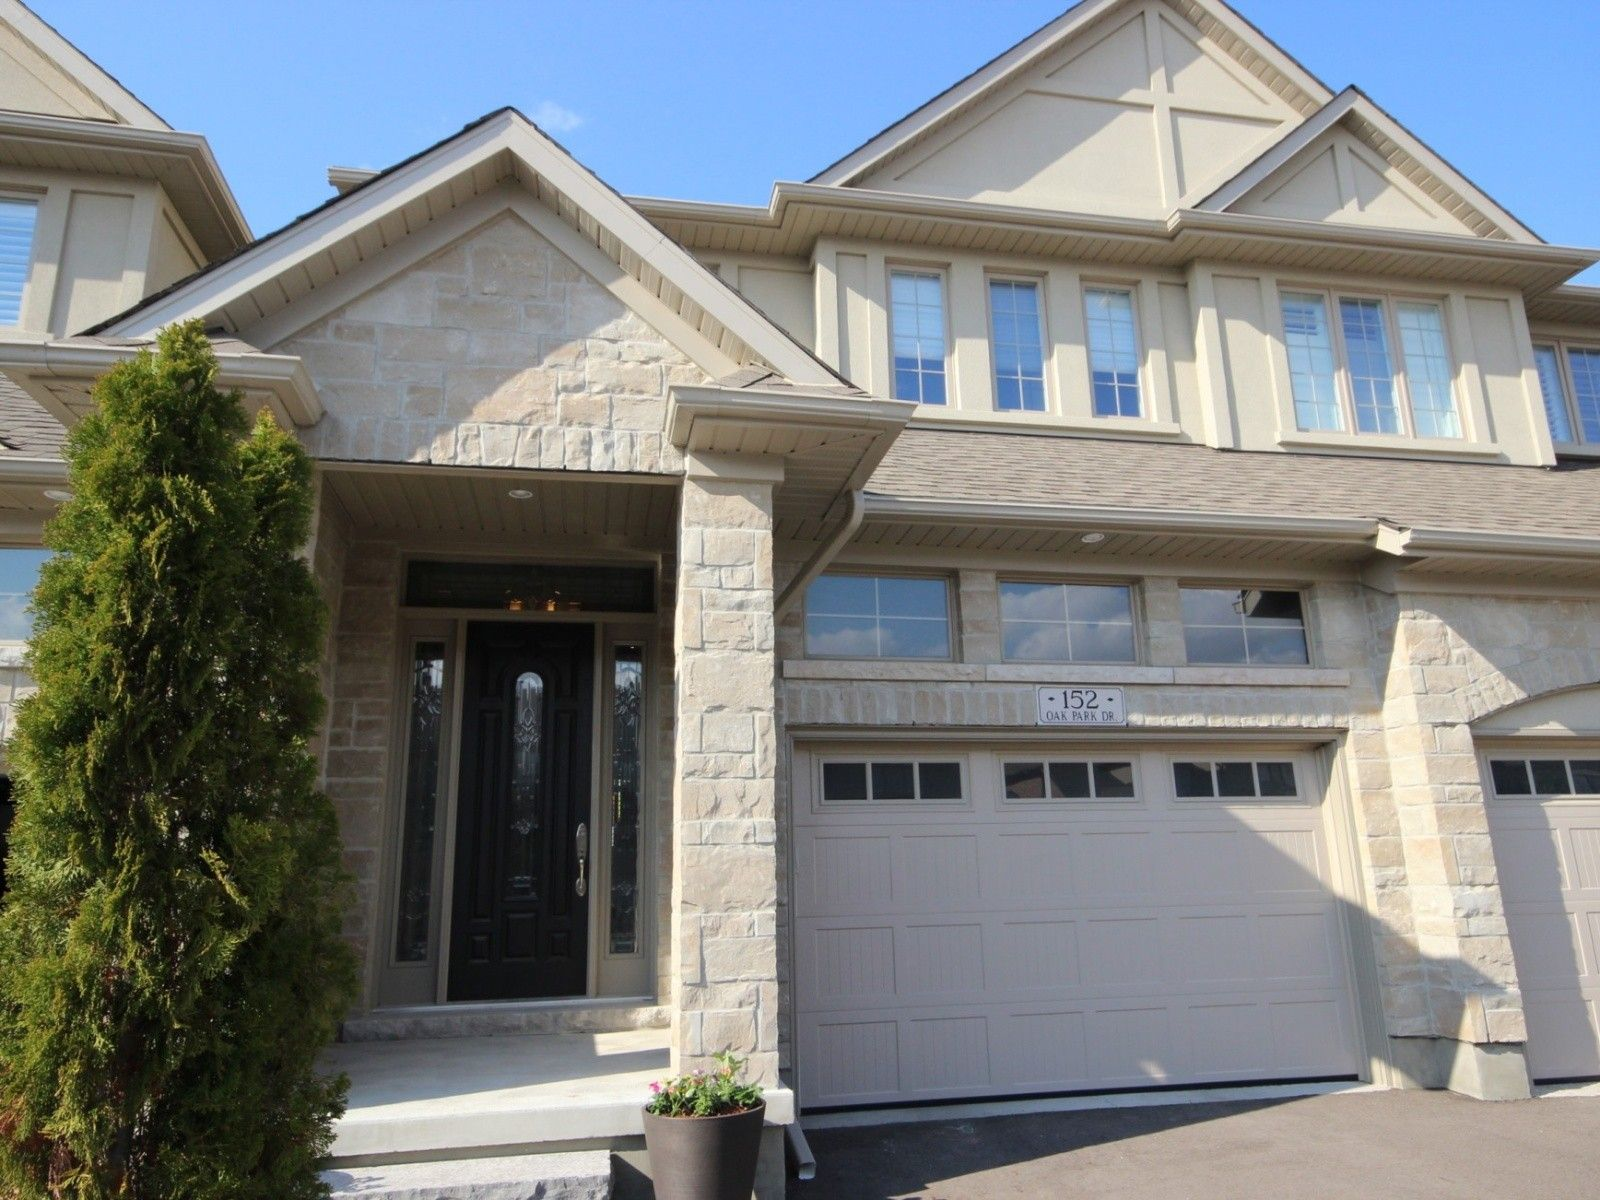 wonderful Houses For Sale In Kitchener Waterloo Cambridge #8: Waterloo for sale | ComFree